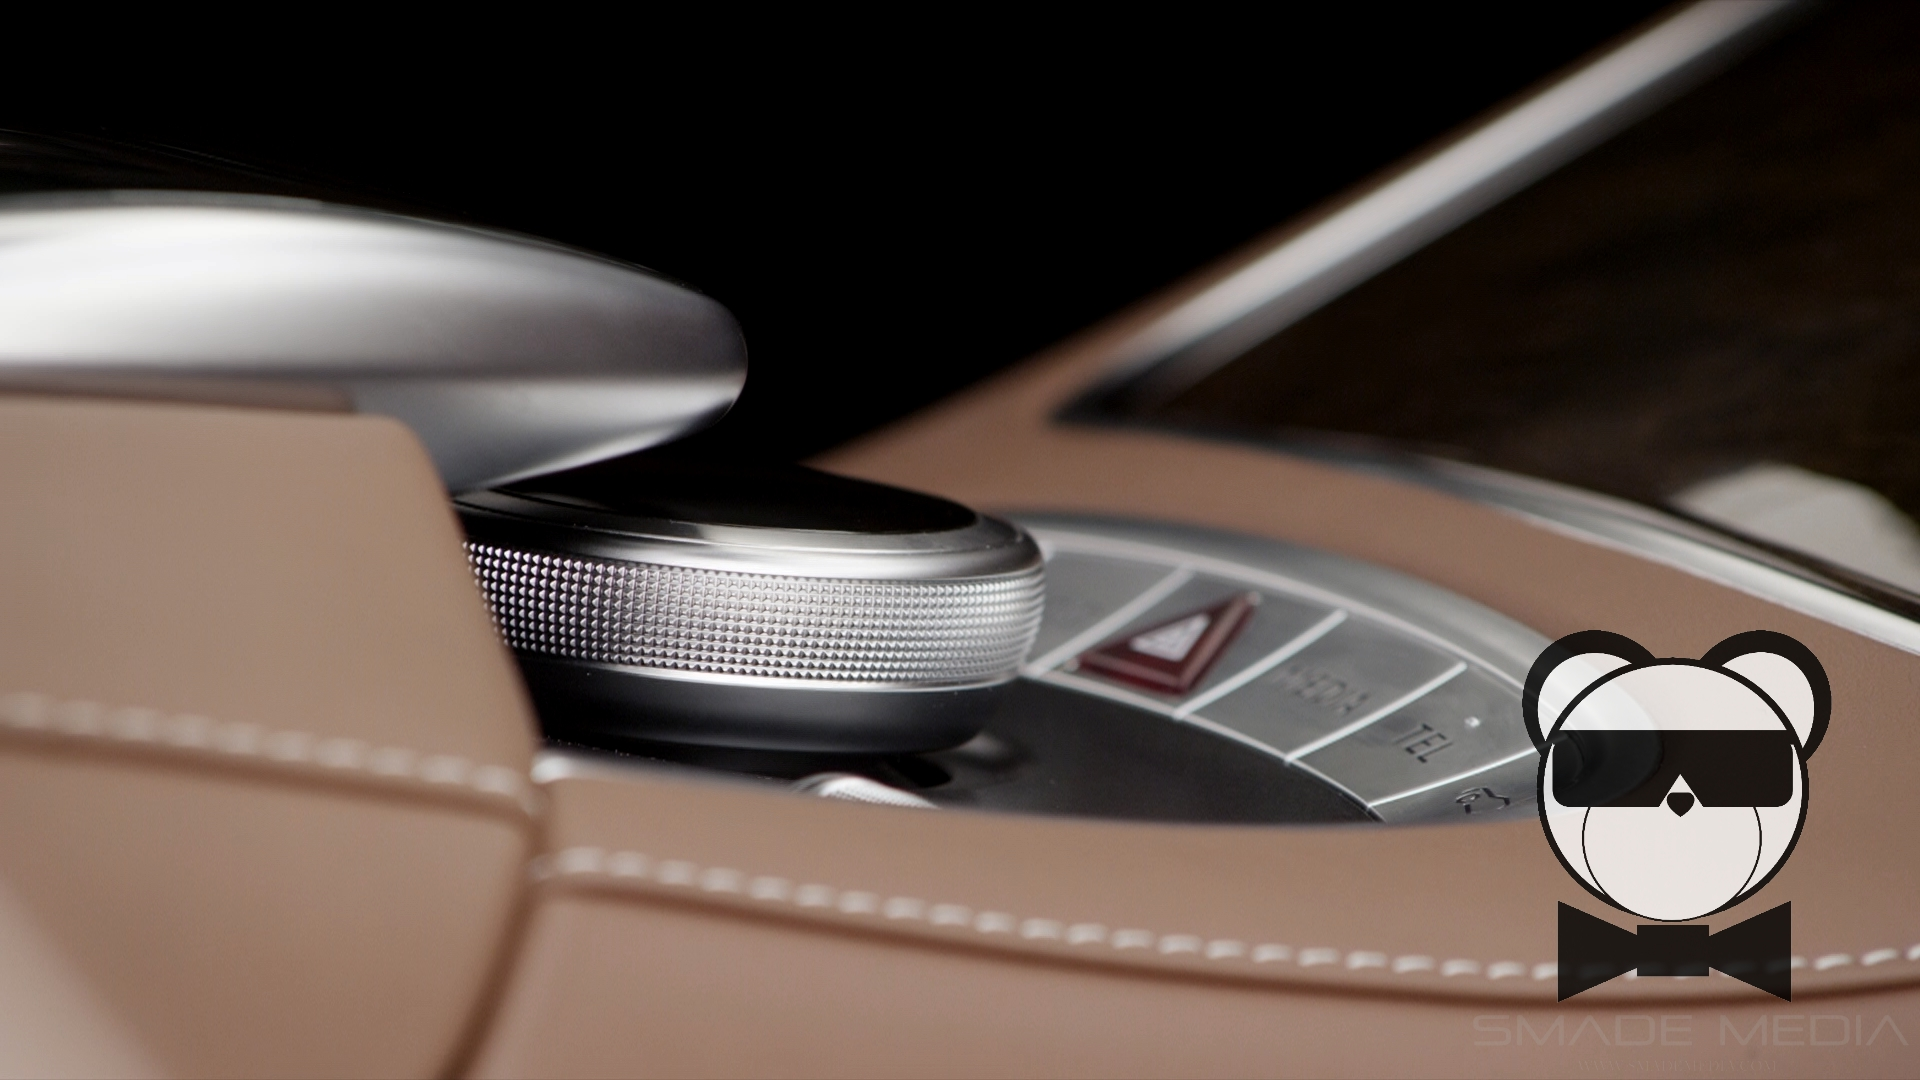 Mercedes-Benz S-Class Coupe - (252) SMADEMEDIA.COM inDESIGN Collection